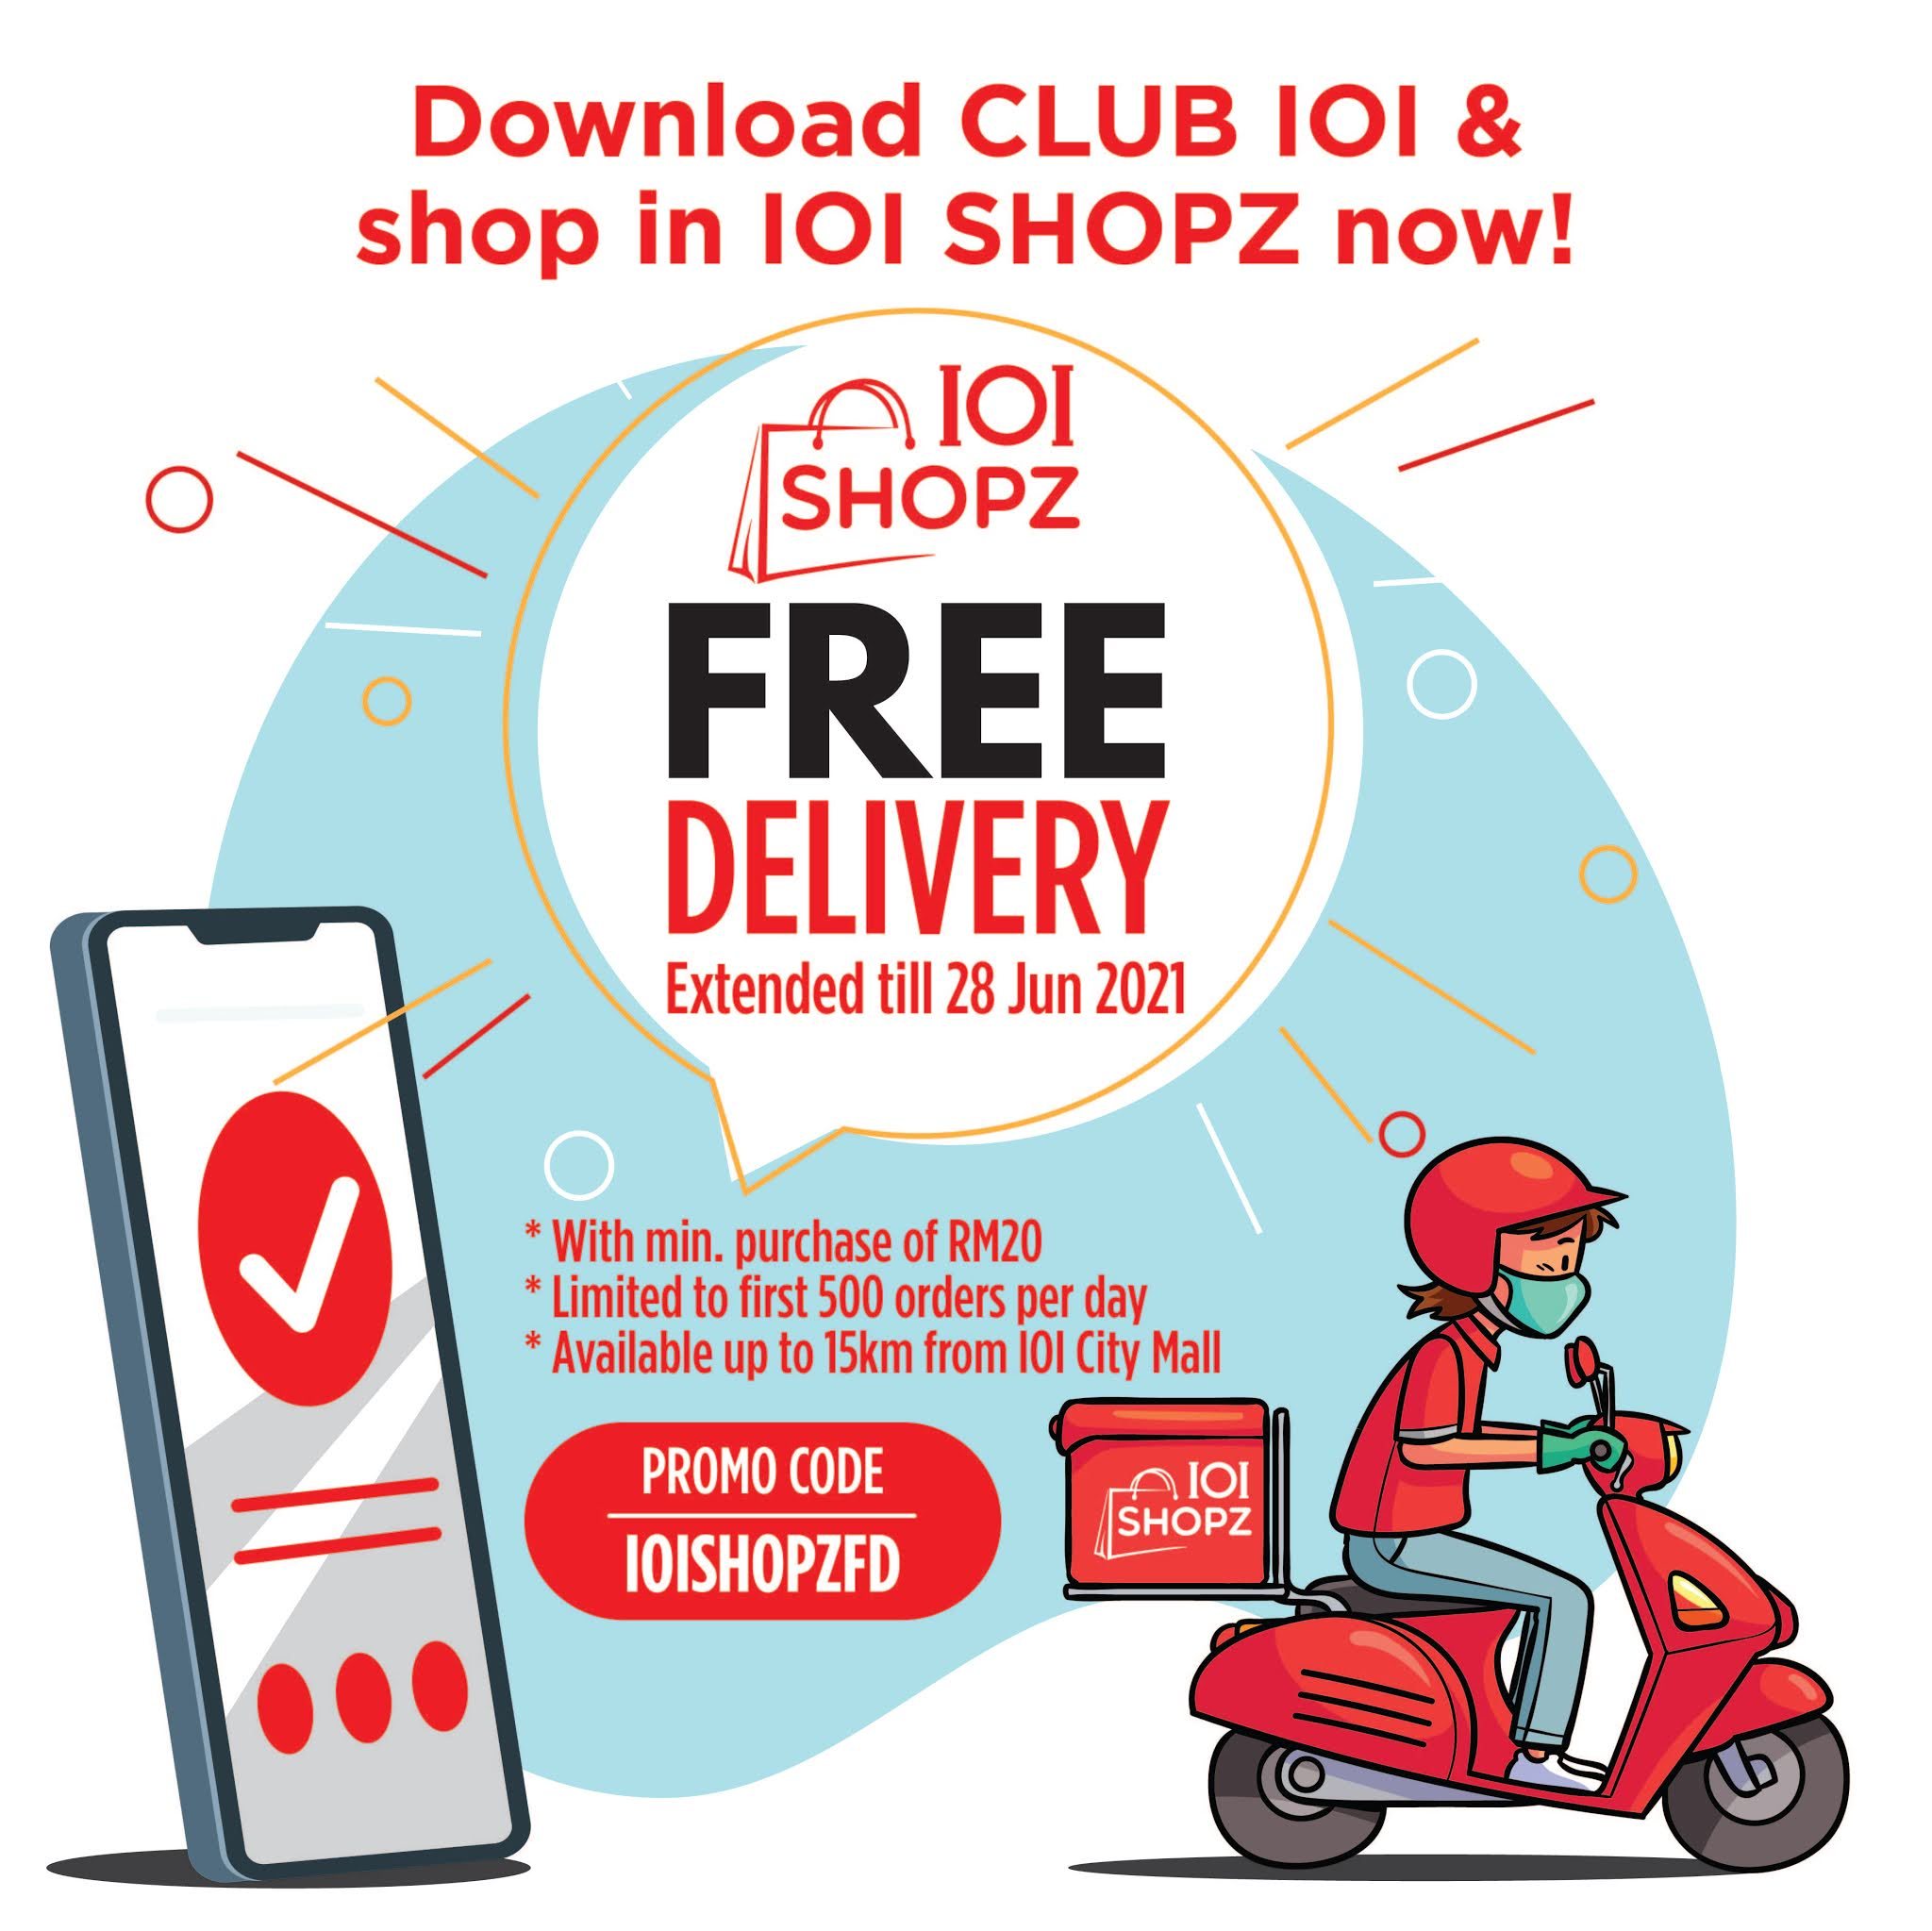 ioi shopz: delicious deliveries from ioi city mall, with exclusive benefits for club ioi members